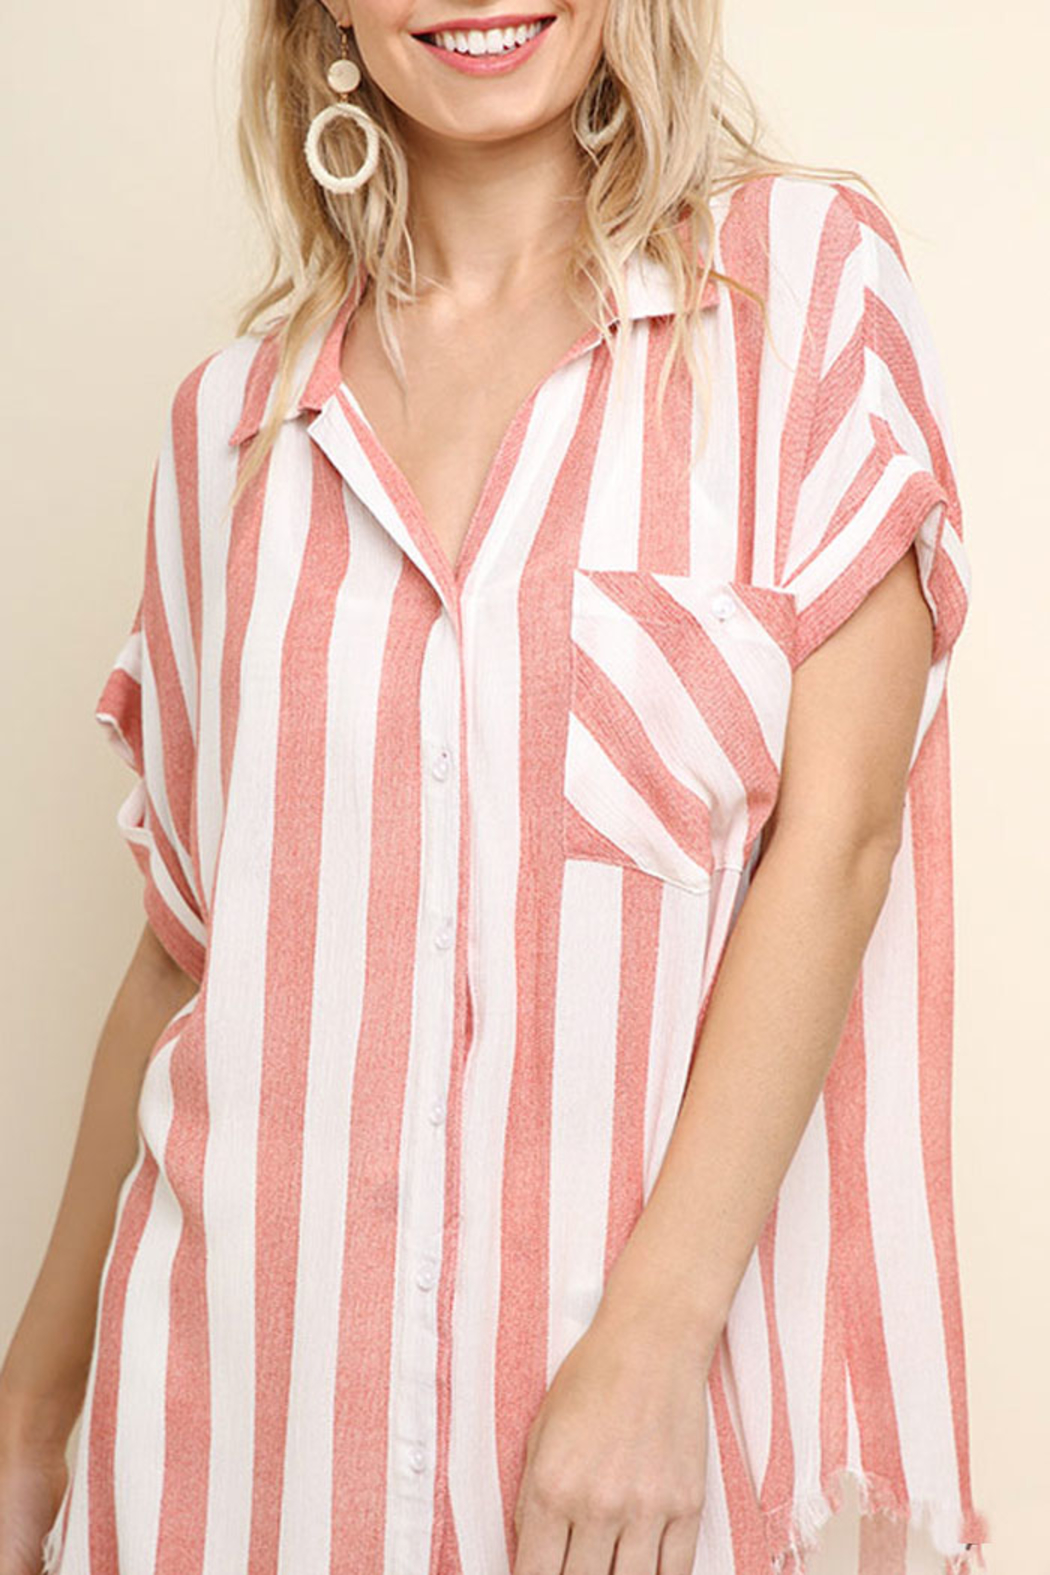 Umgee USA Striped Button-Up Top - Main Image